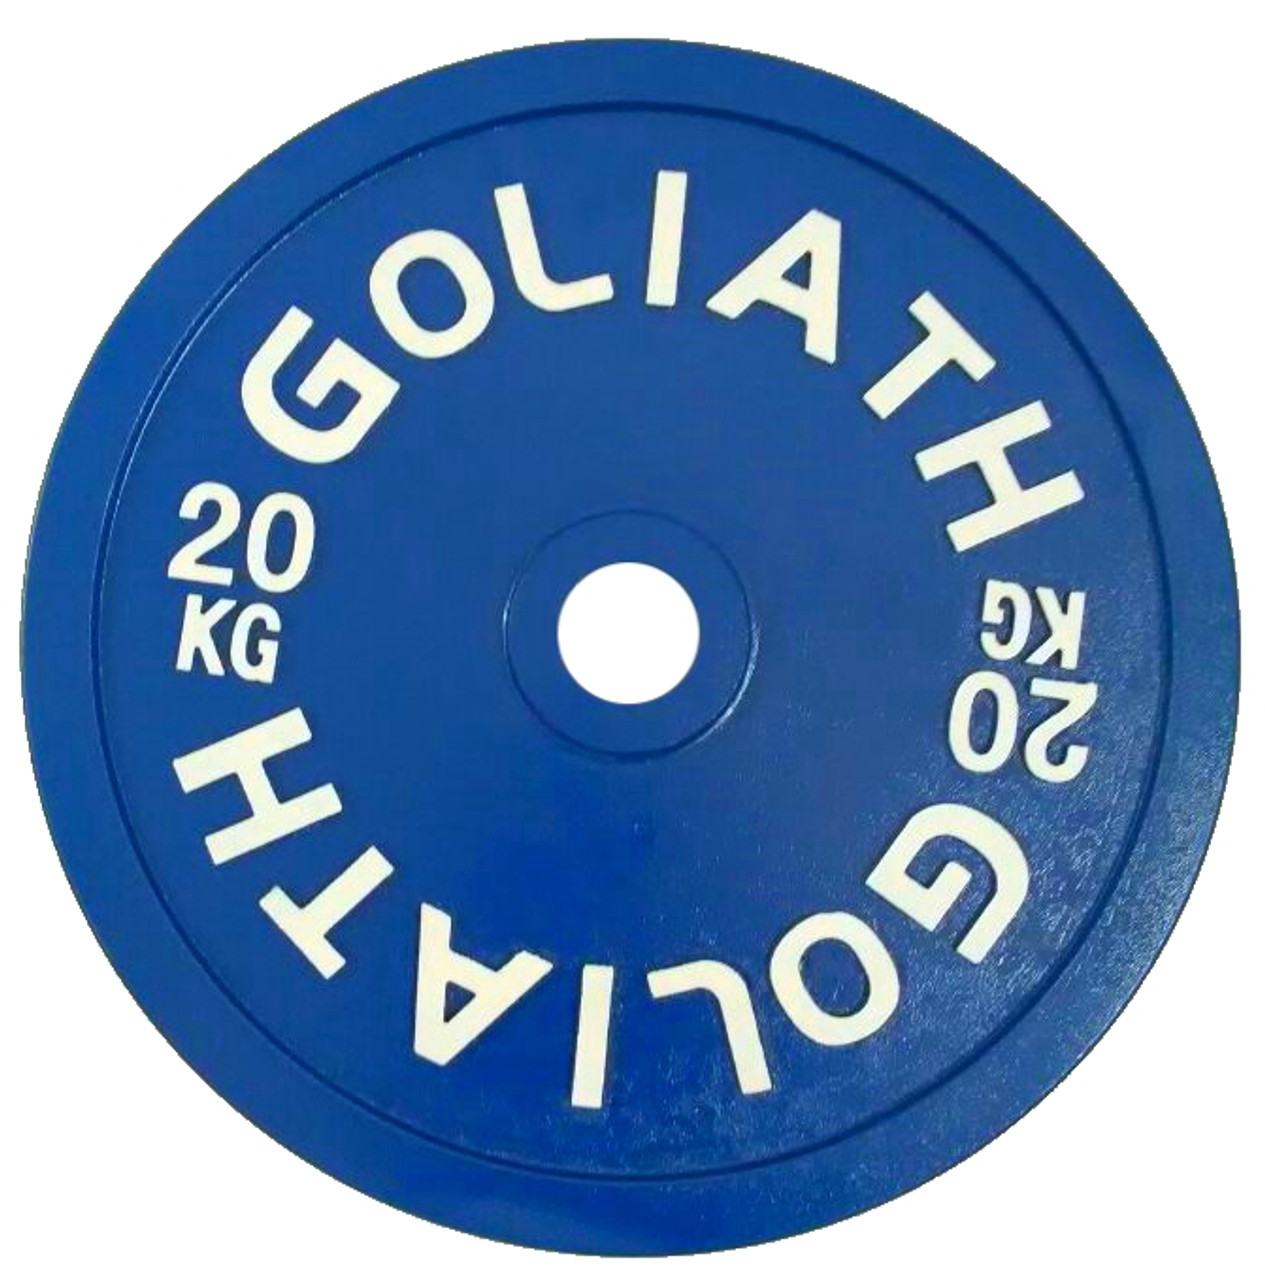 Goliath Calibrated Powerlifting Plate - 20kg (PAIR) - LIMITED QUANTITY